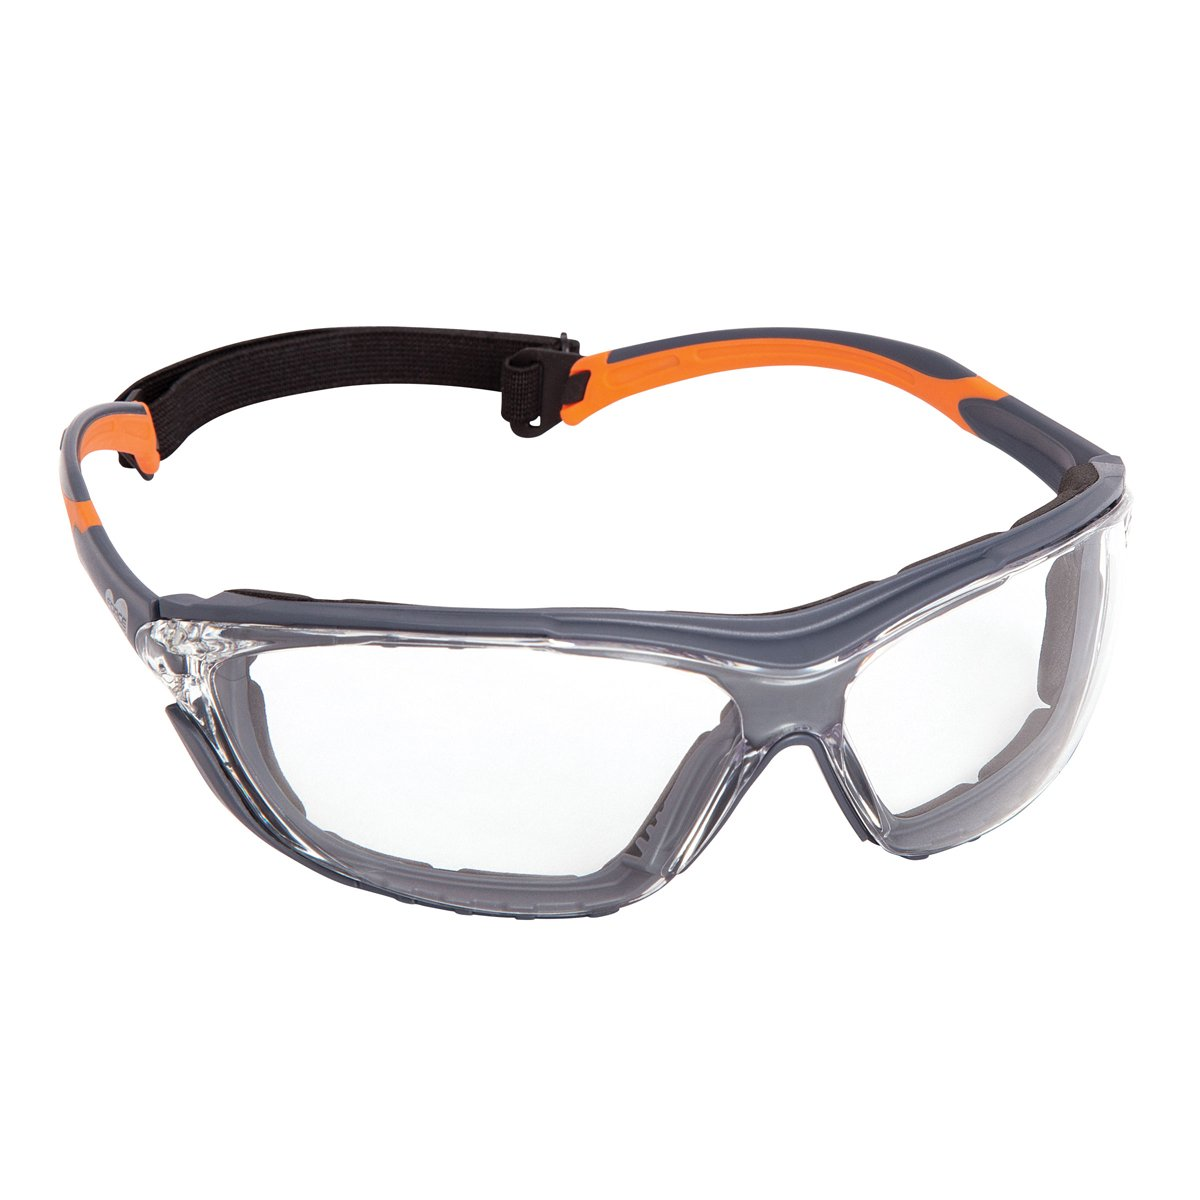 Force360 NeoGuard Clear Lens Safety Spectacle with Gasket